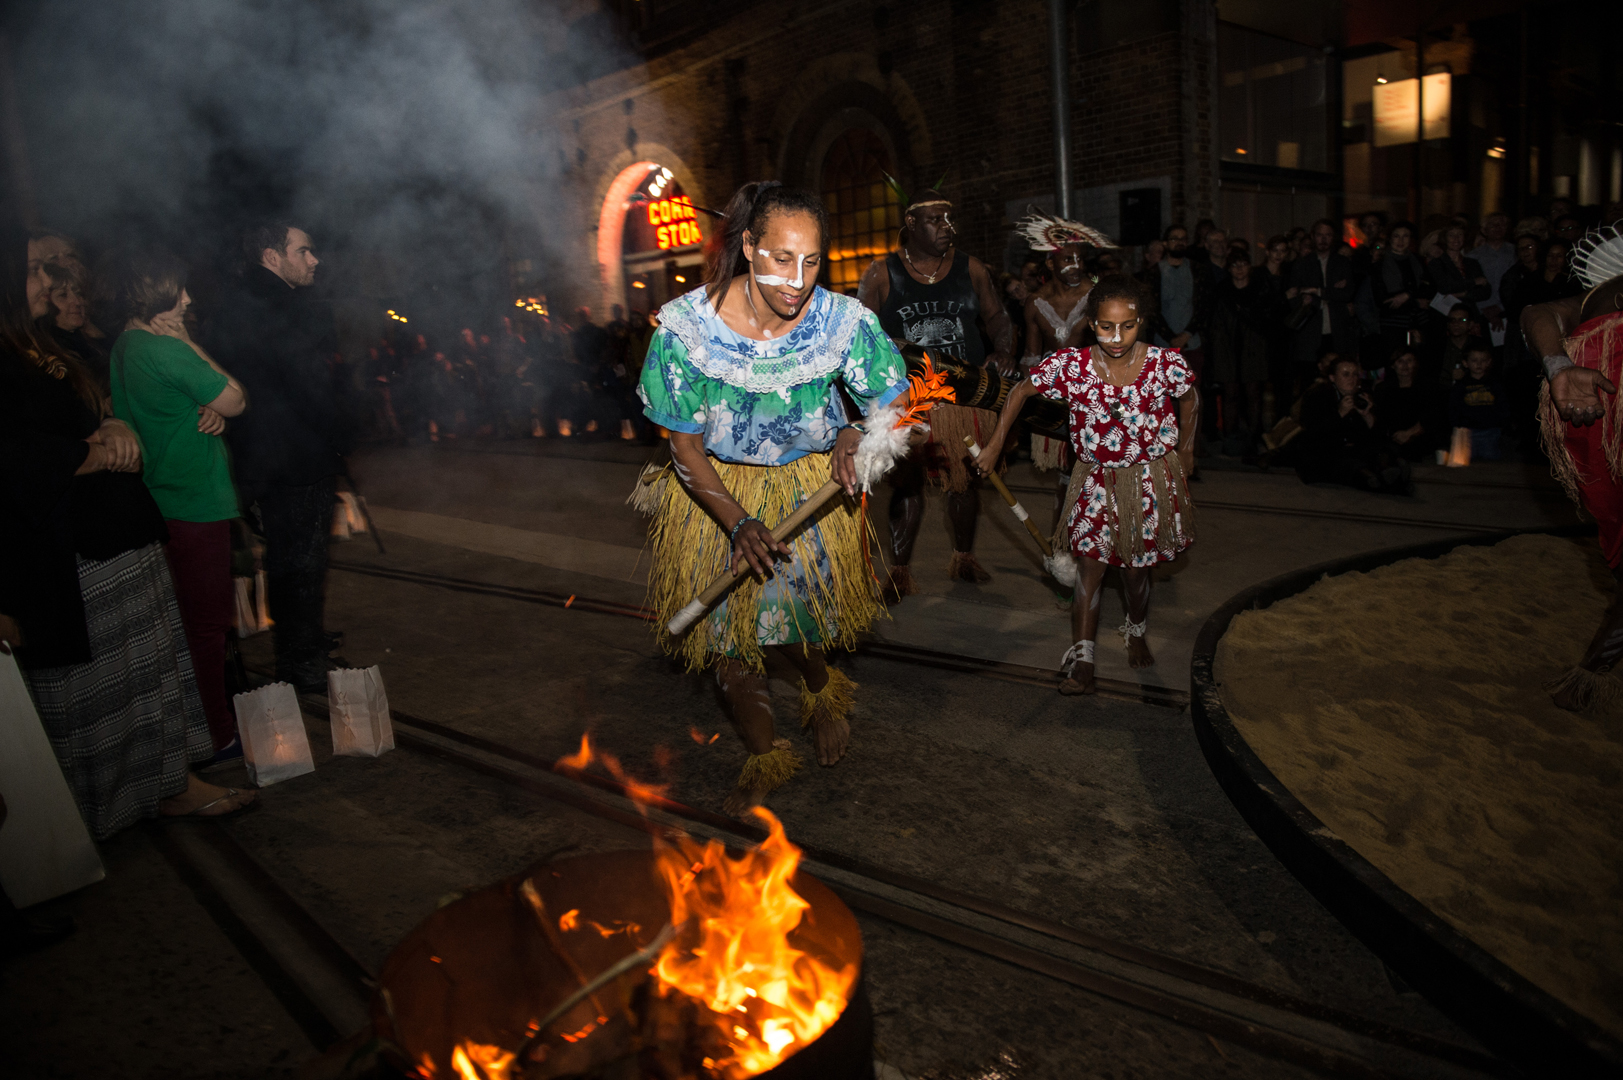 ©, Indigenous Australian Dance Group, Opening Ceremony outside Carriageworks